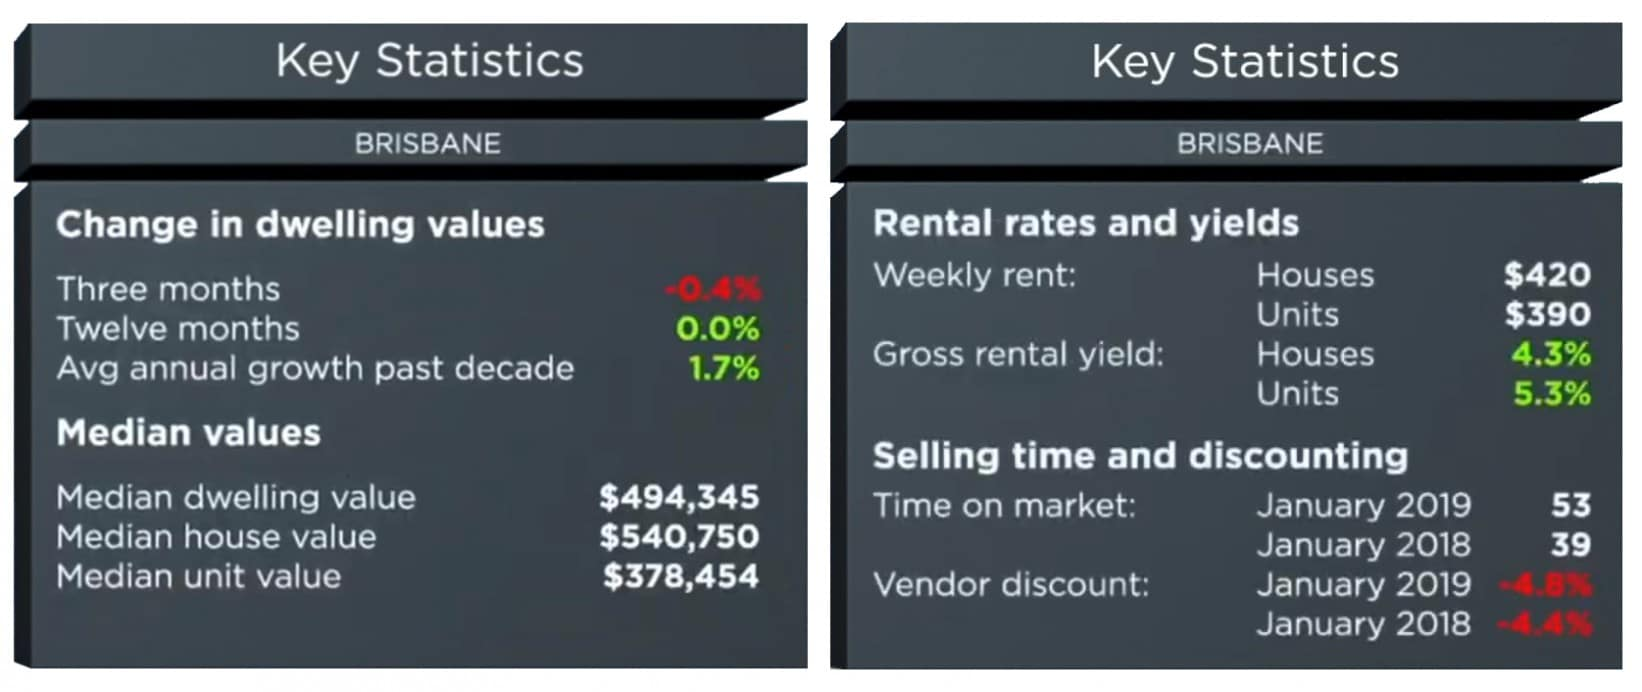 Brisbane Property Market: Deep Analysis - Forecast, Prices, Suburbs